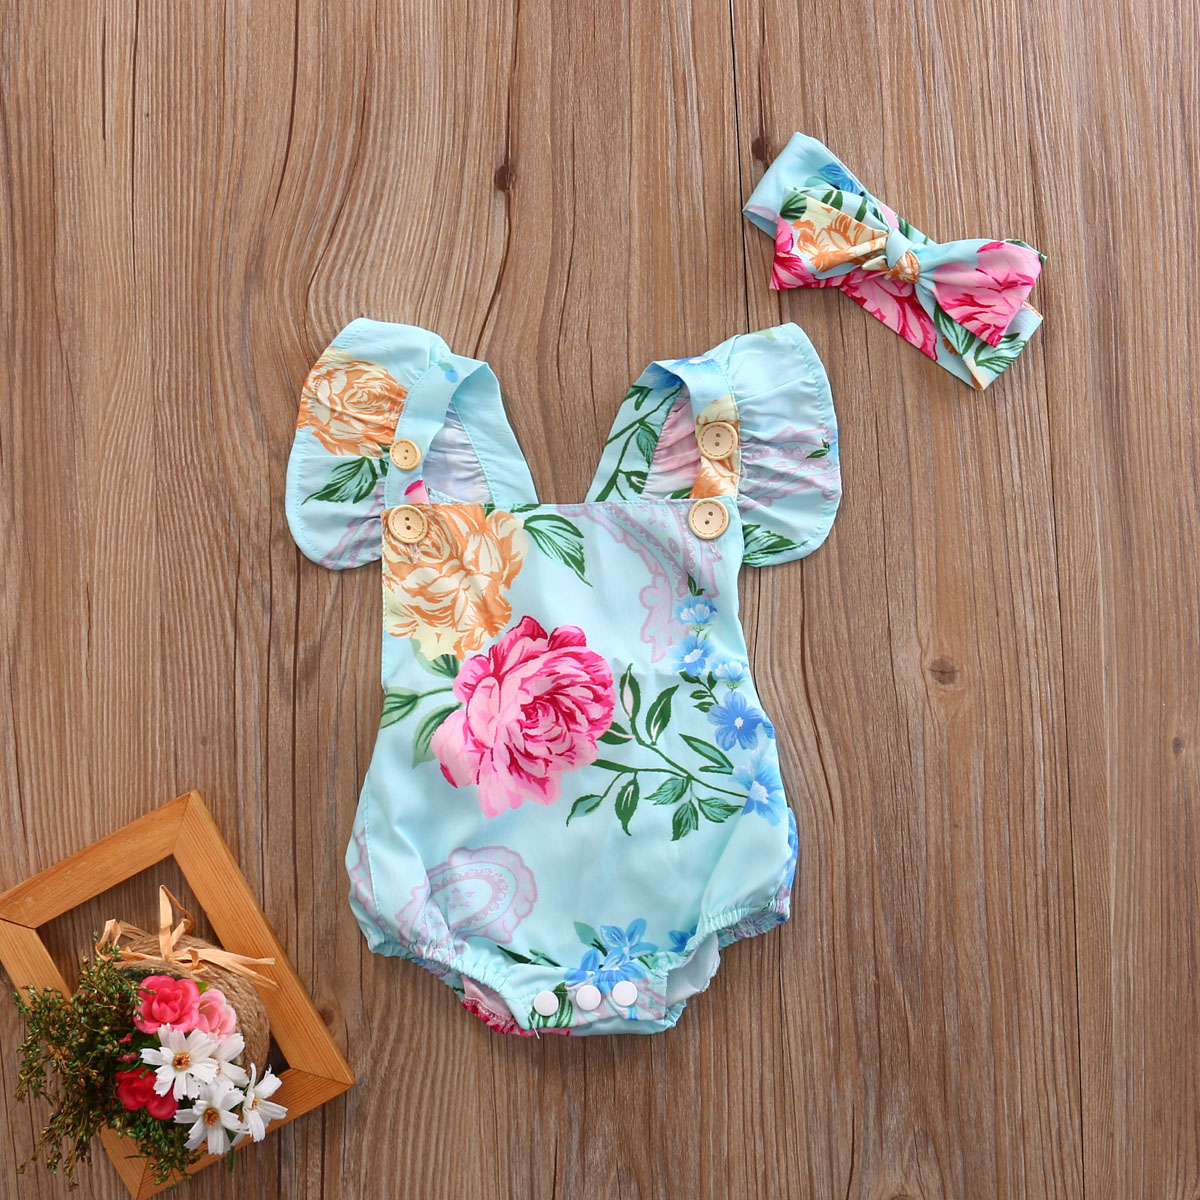 Summer-2017-Newborn-Infant-Baby-Girl-Floral-Button-Romper-Backcross-Jumpsuit-Clothes-Outfits-Sunsuit-Clothing-1